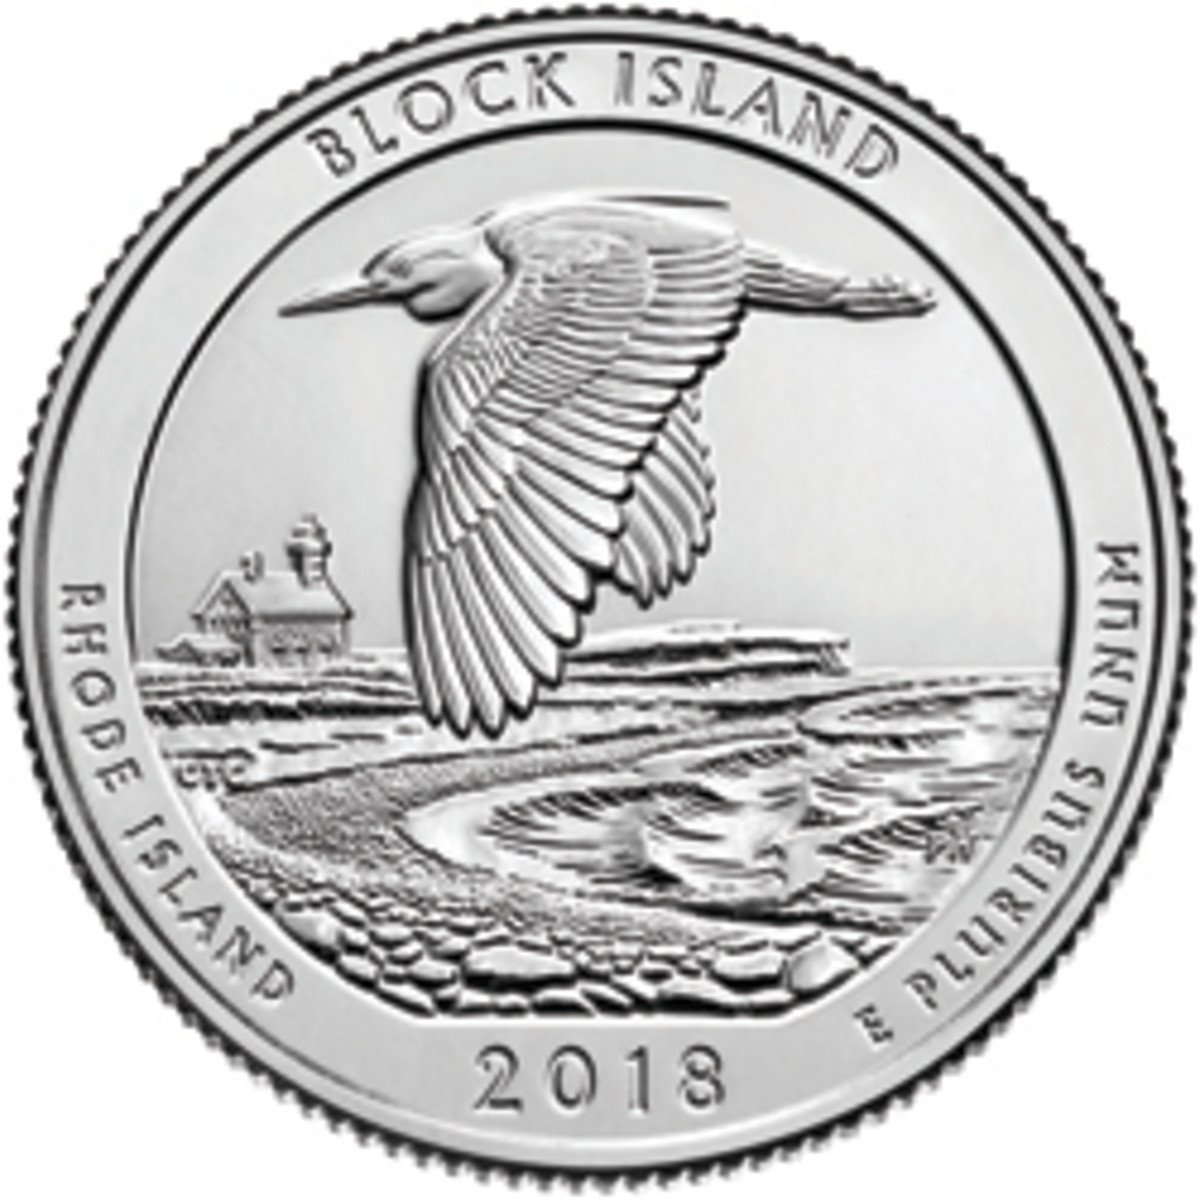 The new 2018 Block Island National Wildlife Refuge quarter, the latest in the America the Beautiful series.